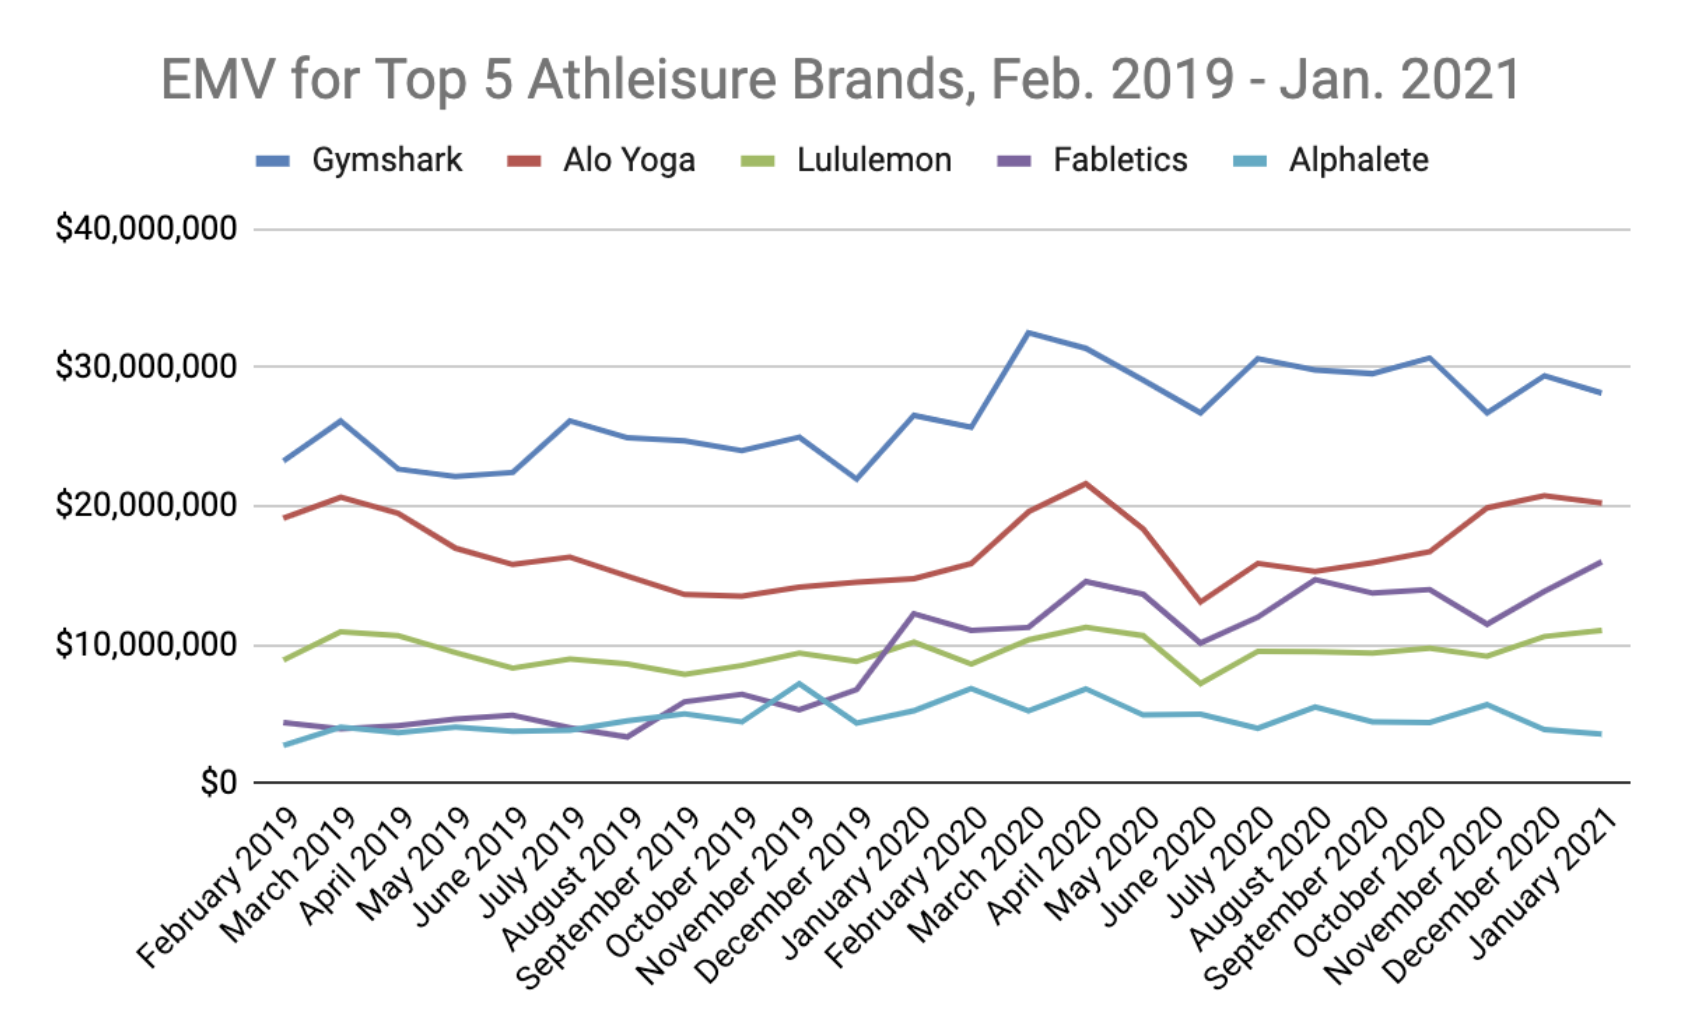 A line graph displaying monthly EMV for the 5 top athleisure brands from February 2019 to January 2021.